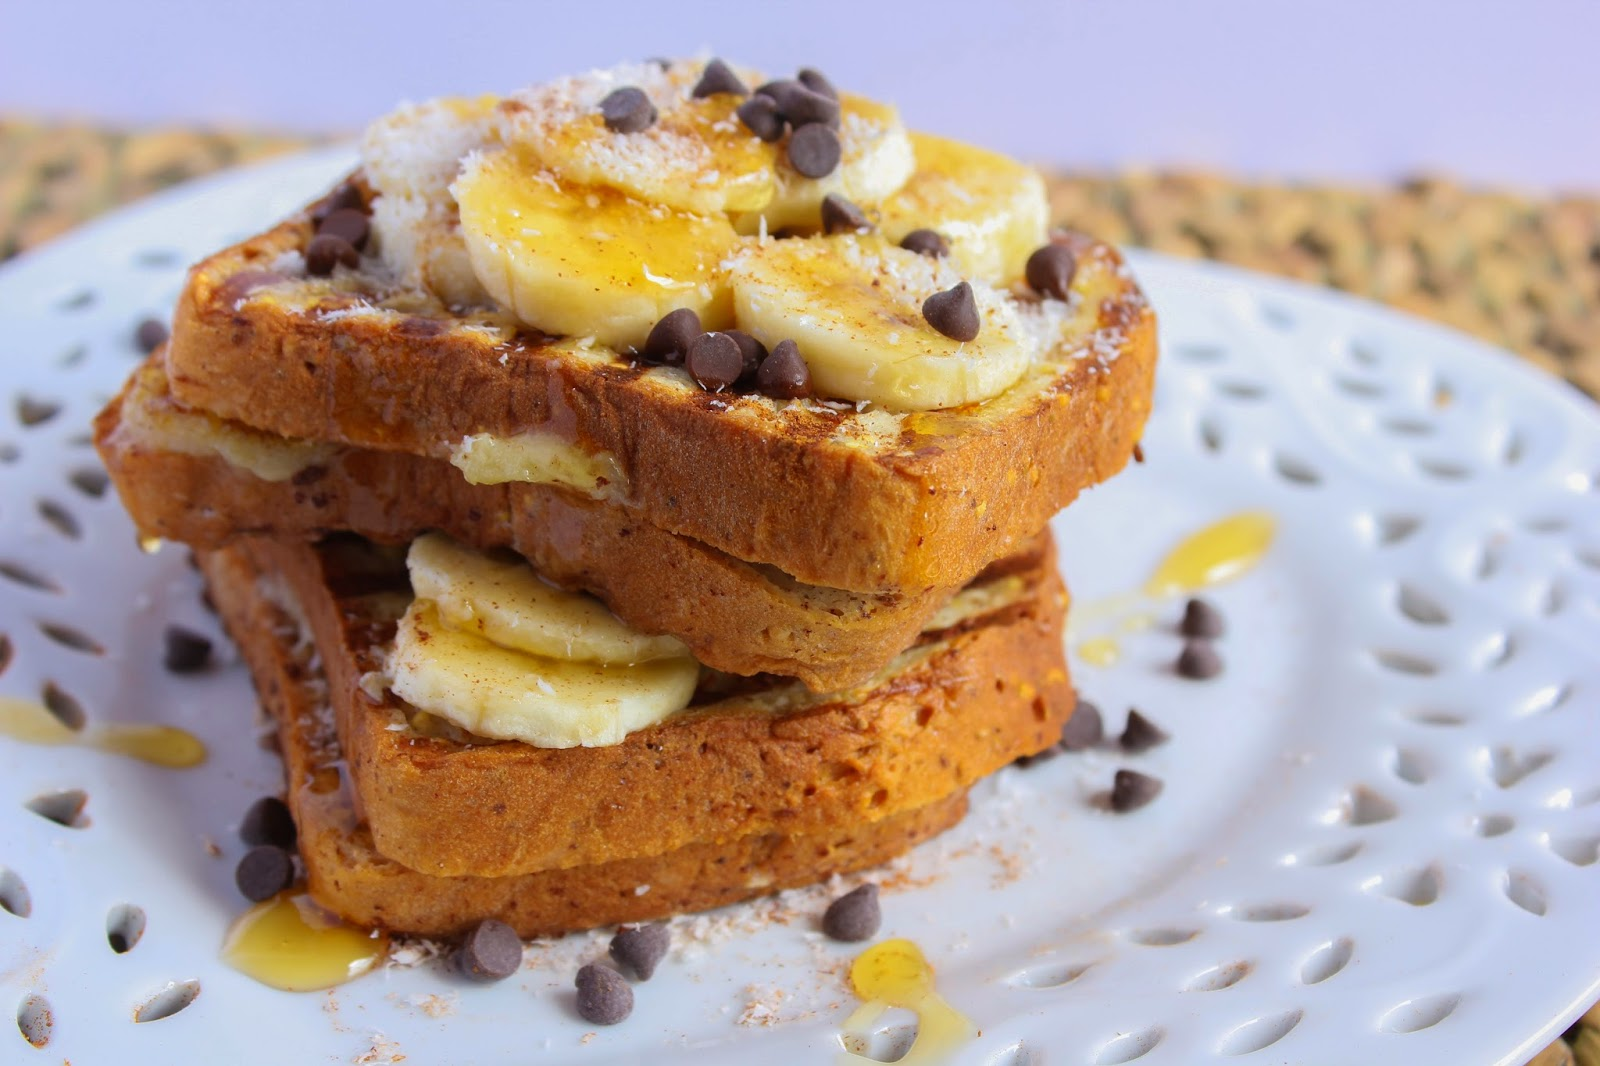 The Healthy Vita: Banana and Chocolate Chip Stuffed French Toast for ...